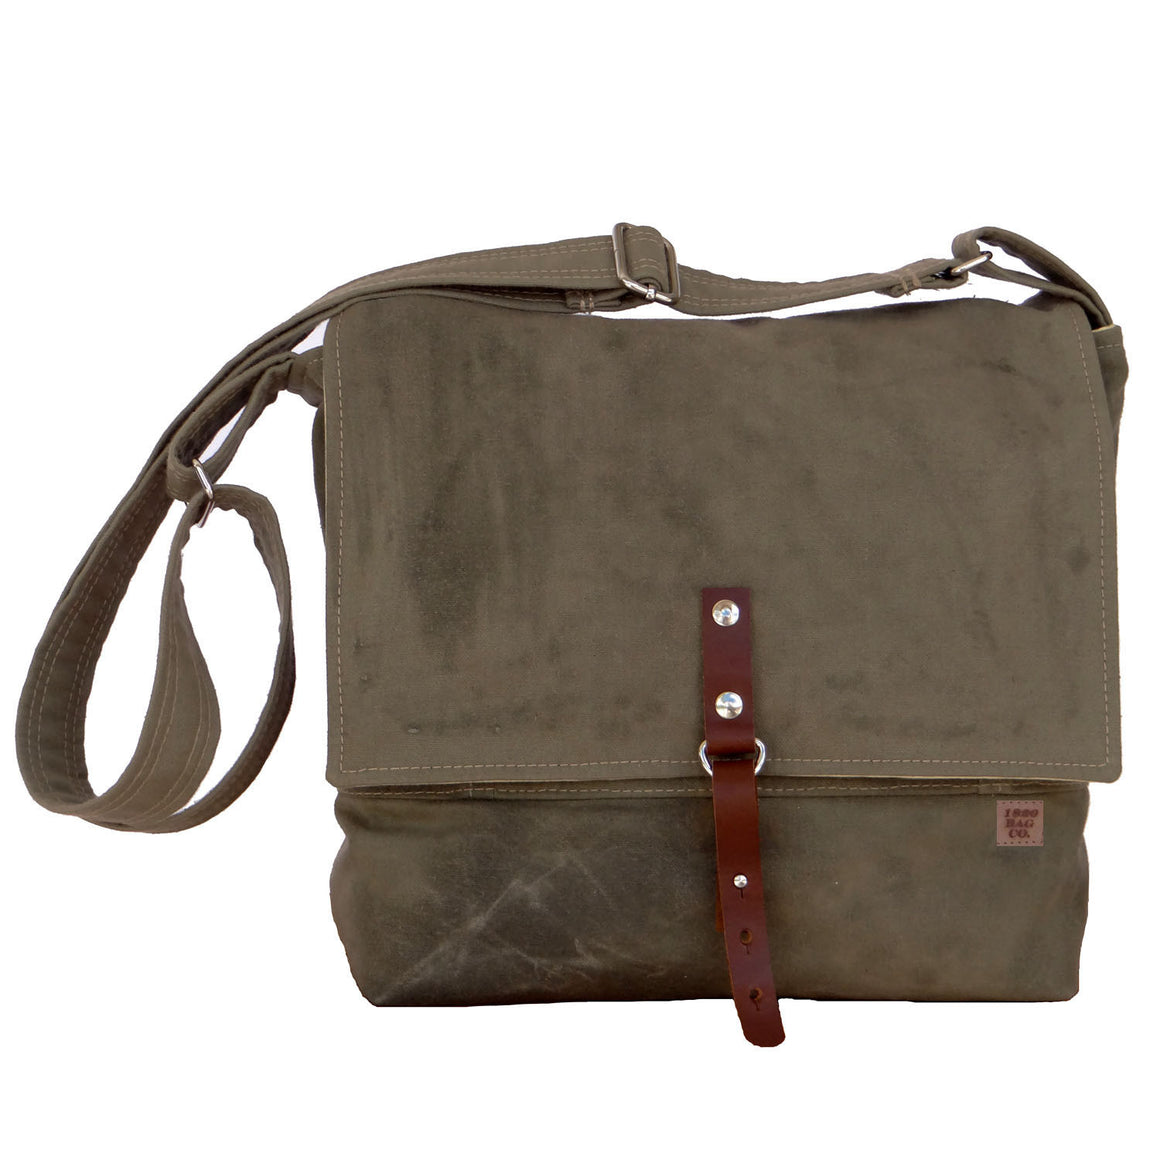 Mens Waxed Canvas Messenger Field Bag with Leather Strap - 1820 Bag Co.